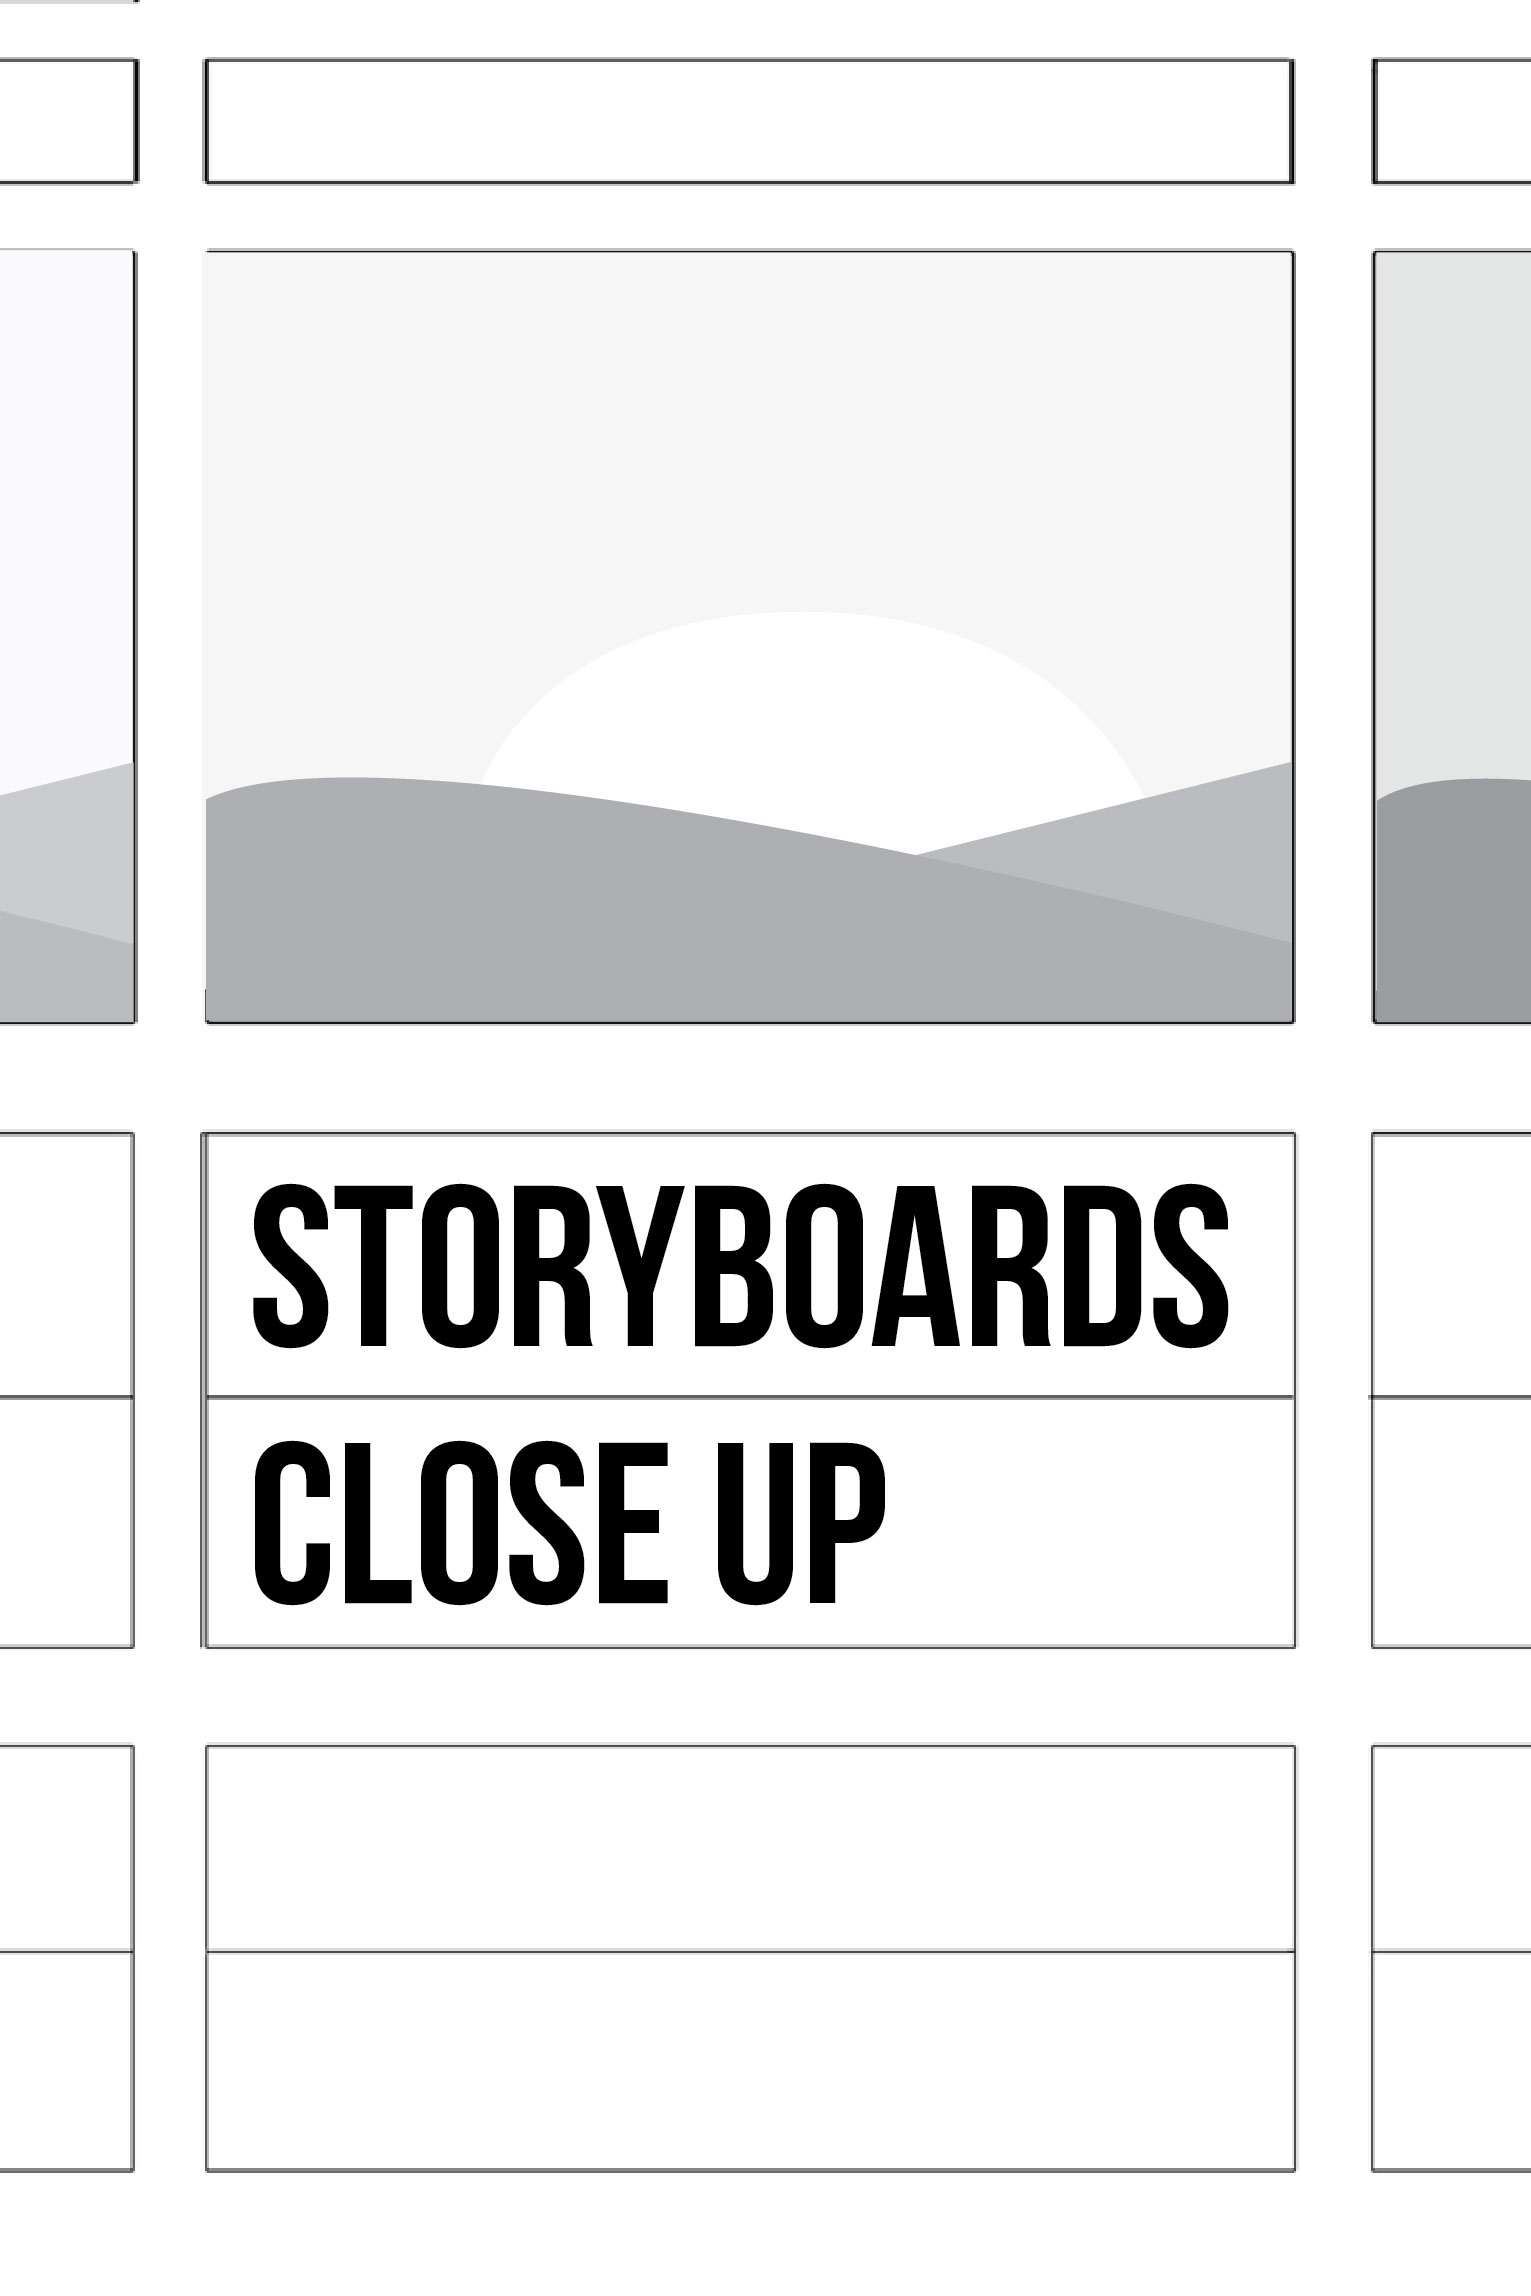 Storyboards close up-pintreset